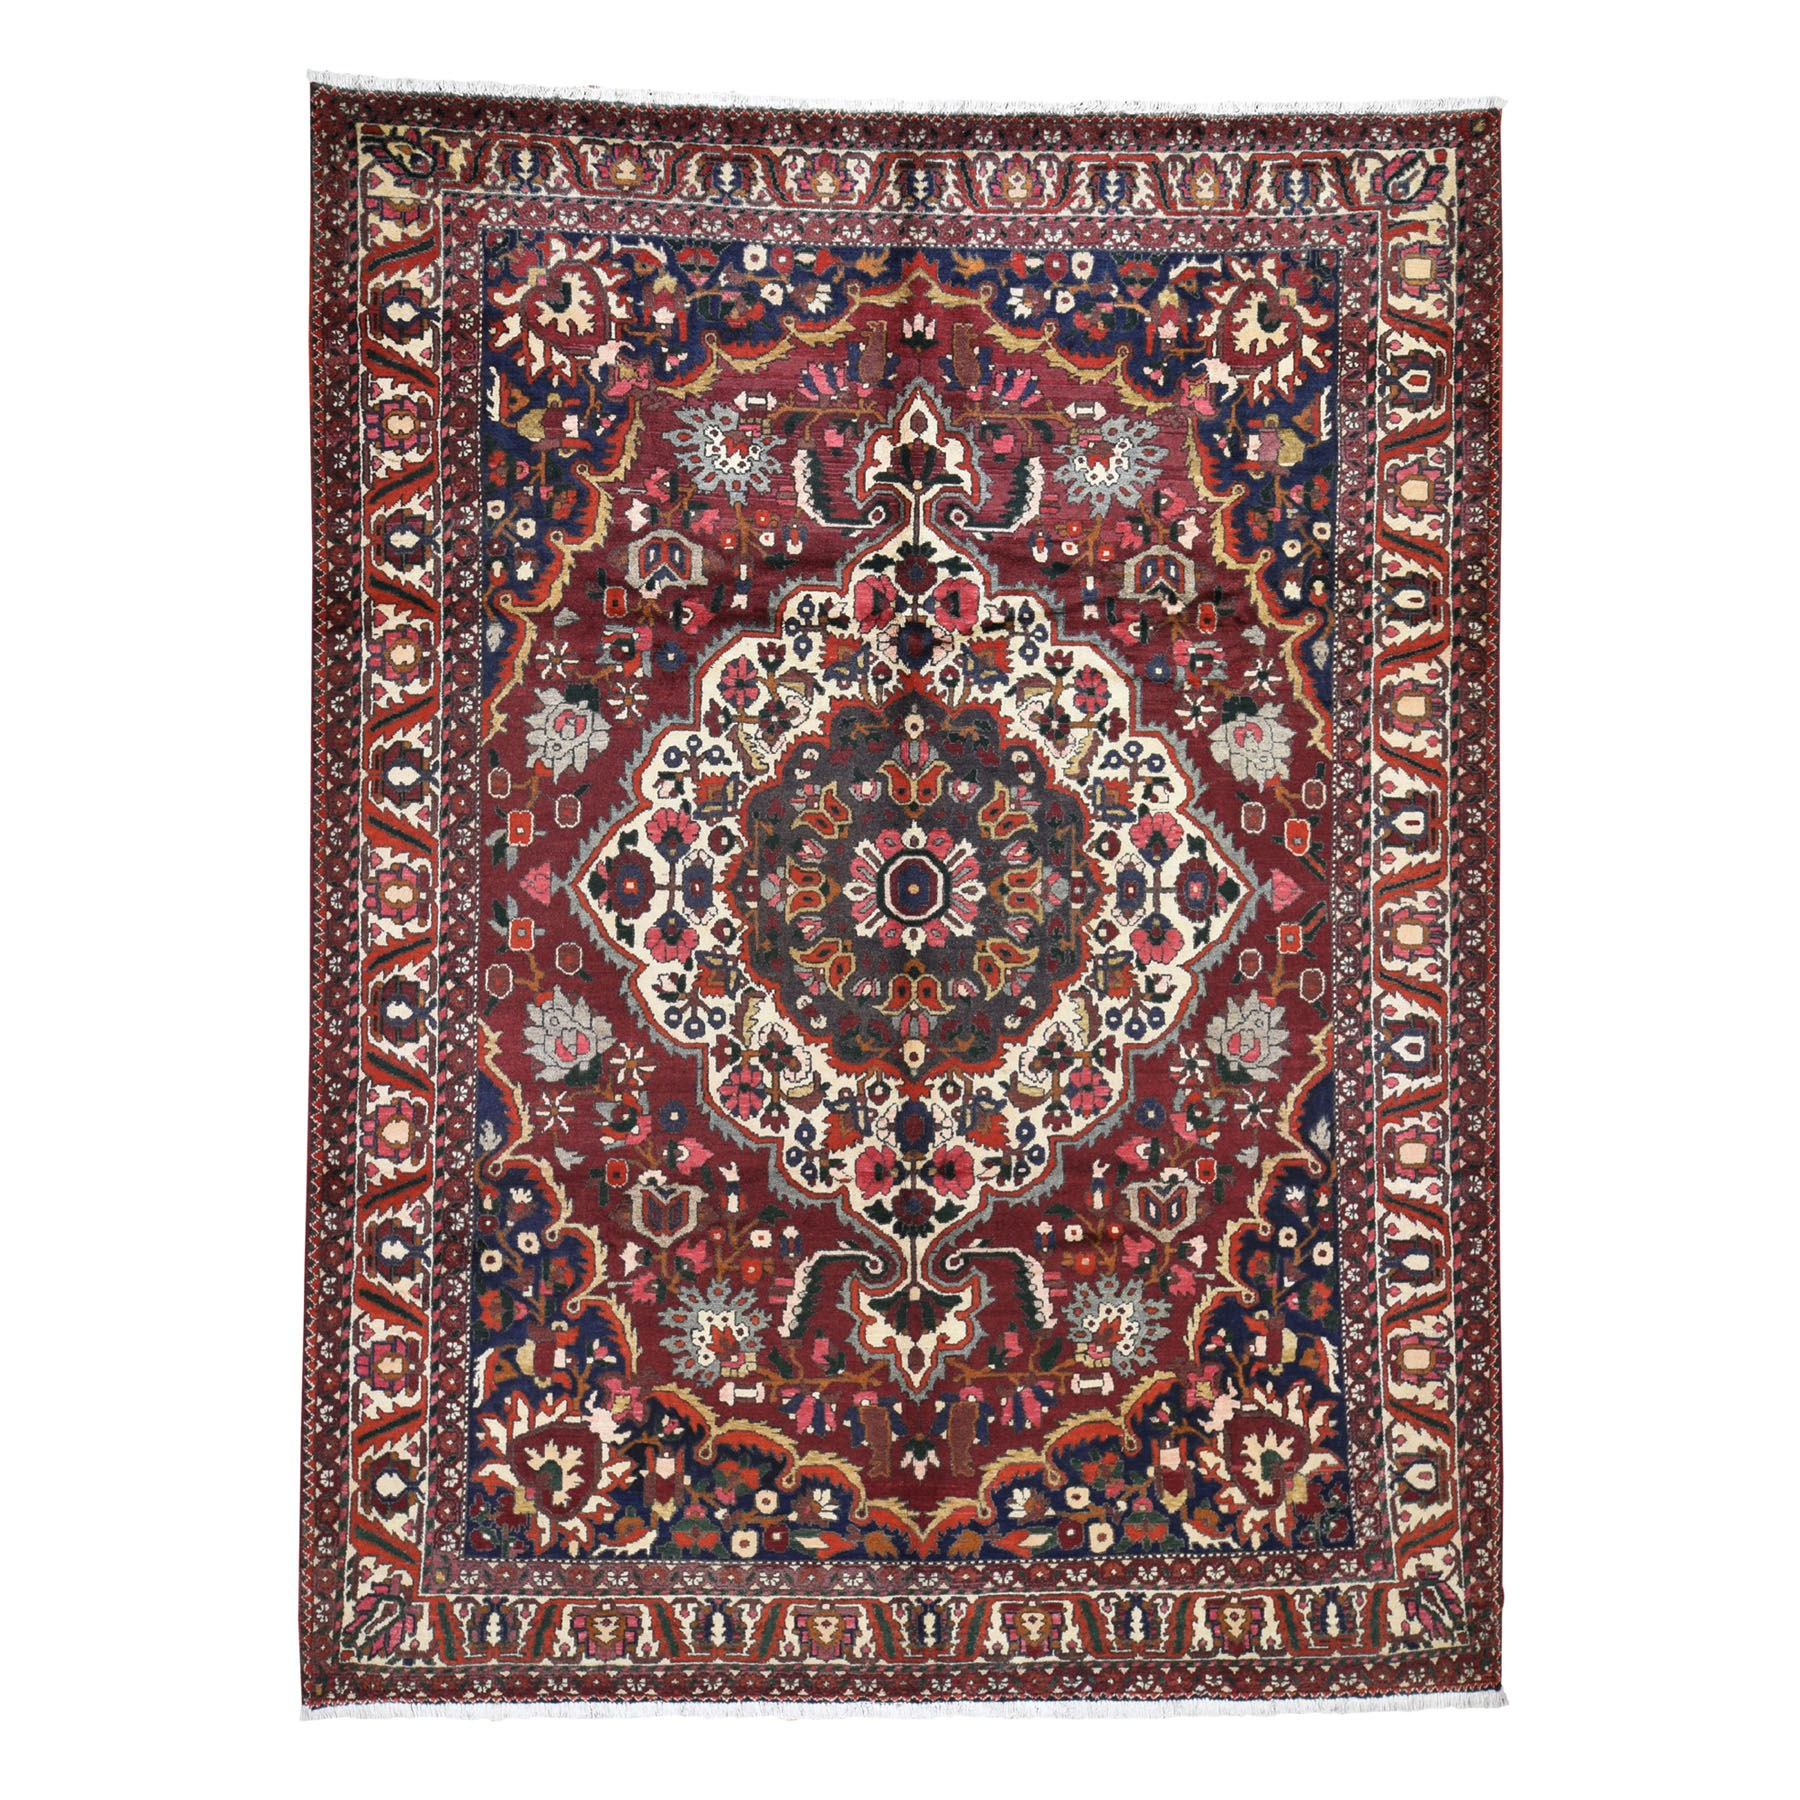 "7'5""x9'10"" Red Vintage Persian Bakhtiari Exc Condition Pure Wool Hand Knotted Oriental Rug"